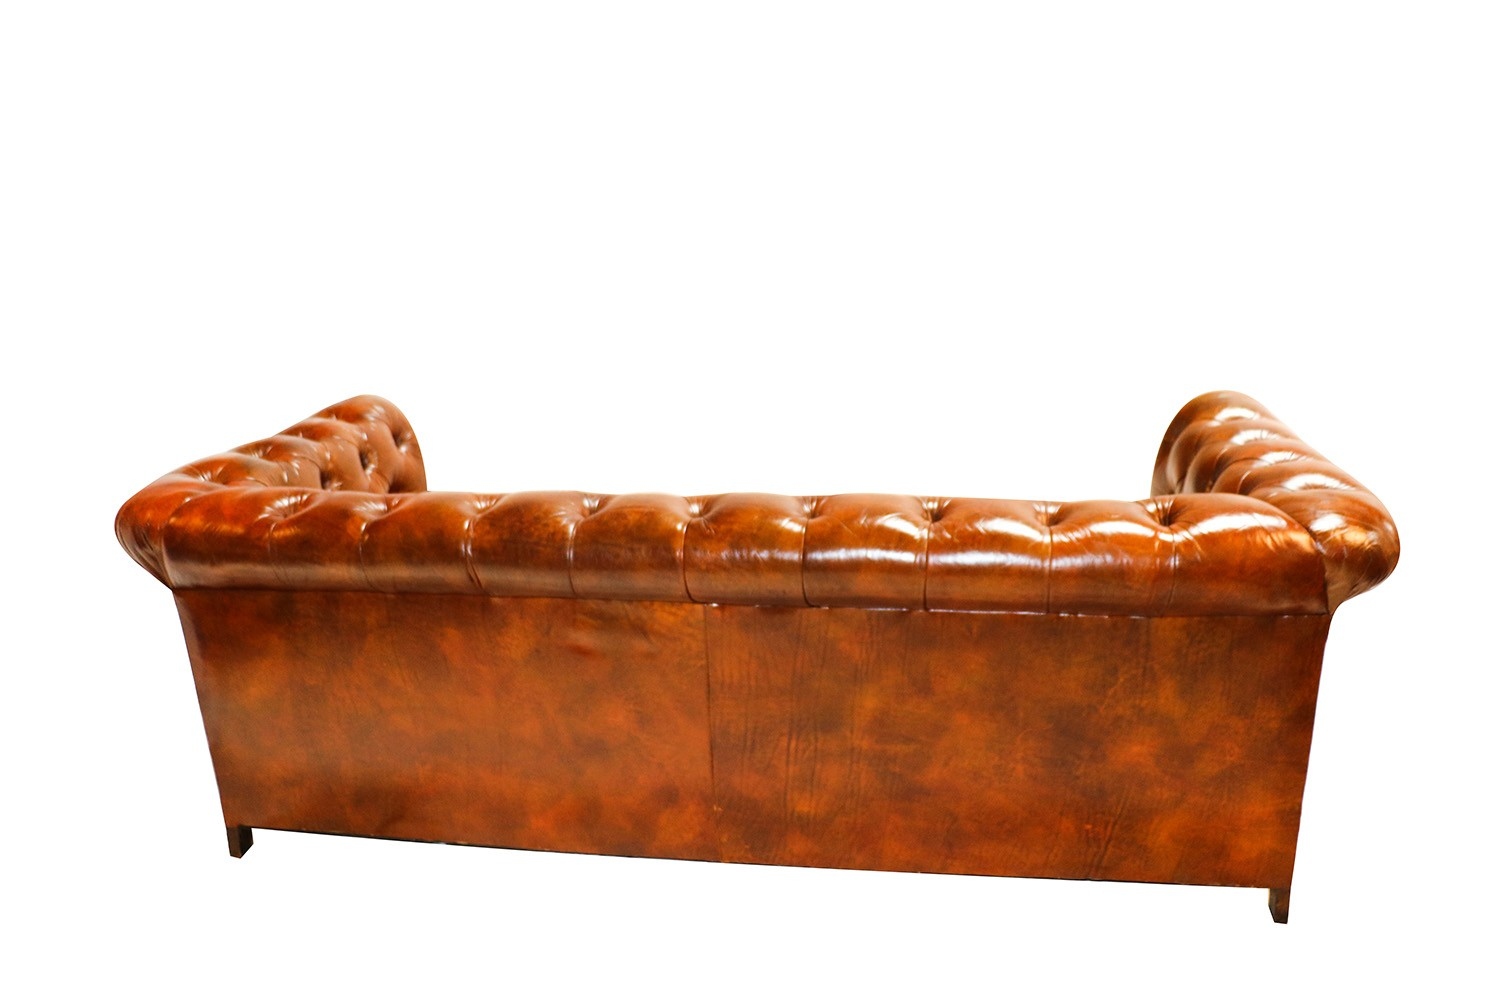 vintage chesterfield style brown leather button tufted sofa. Black Bedroom Furniture Sets. Home Design Ideas